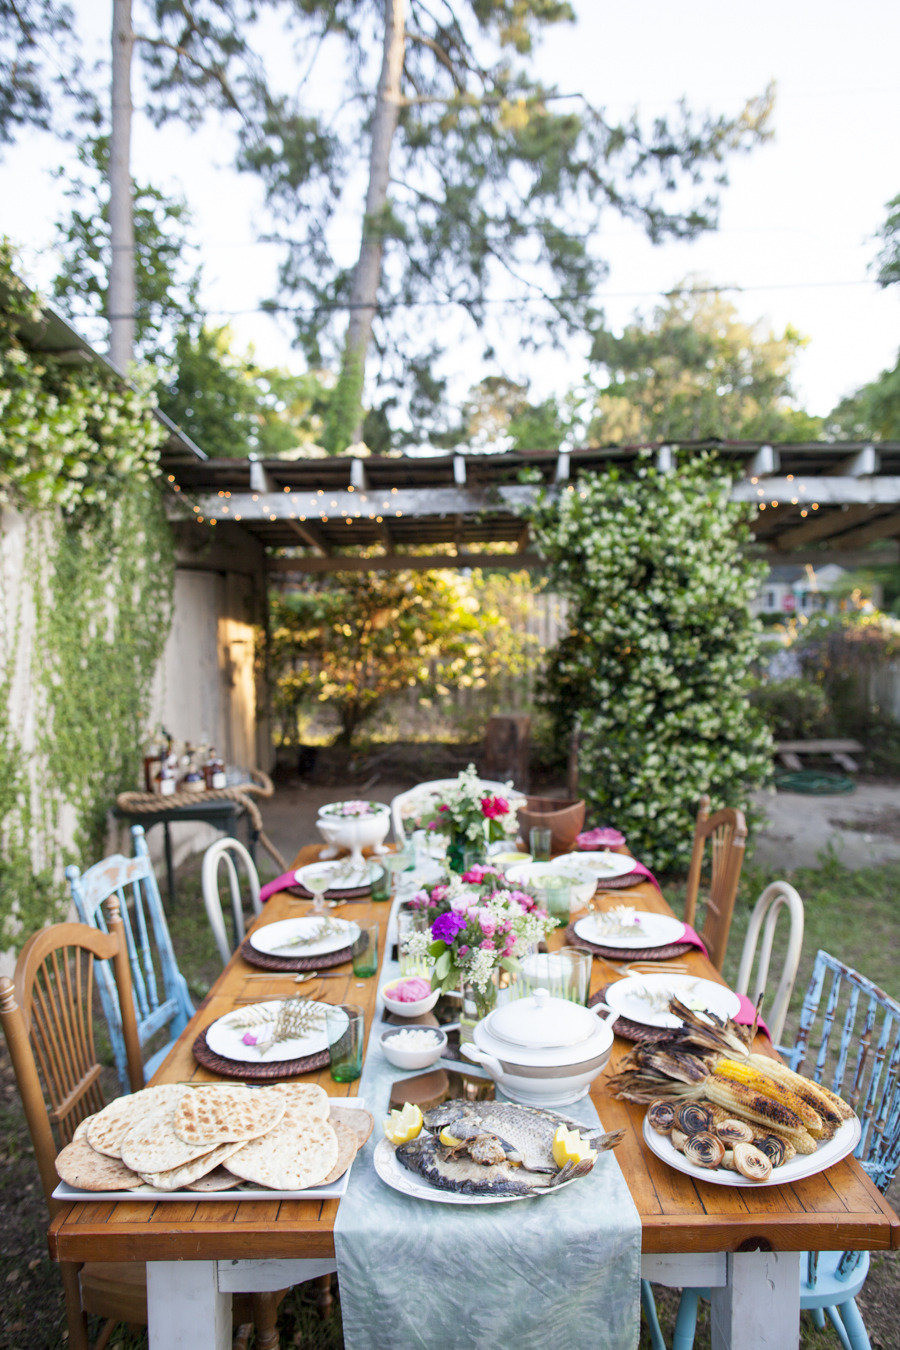 Backyard Party Decor Ideas  50 Outdoor Party Ideas You Should Try Out This Summer